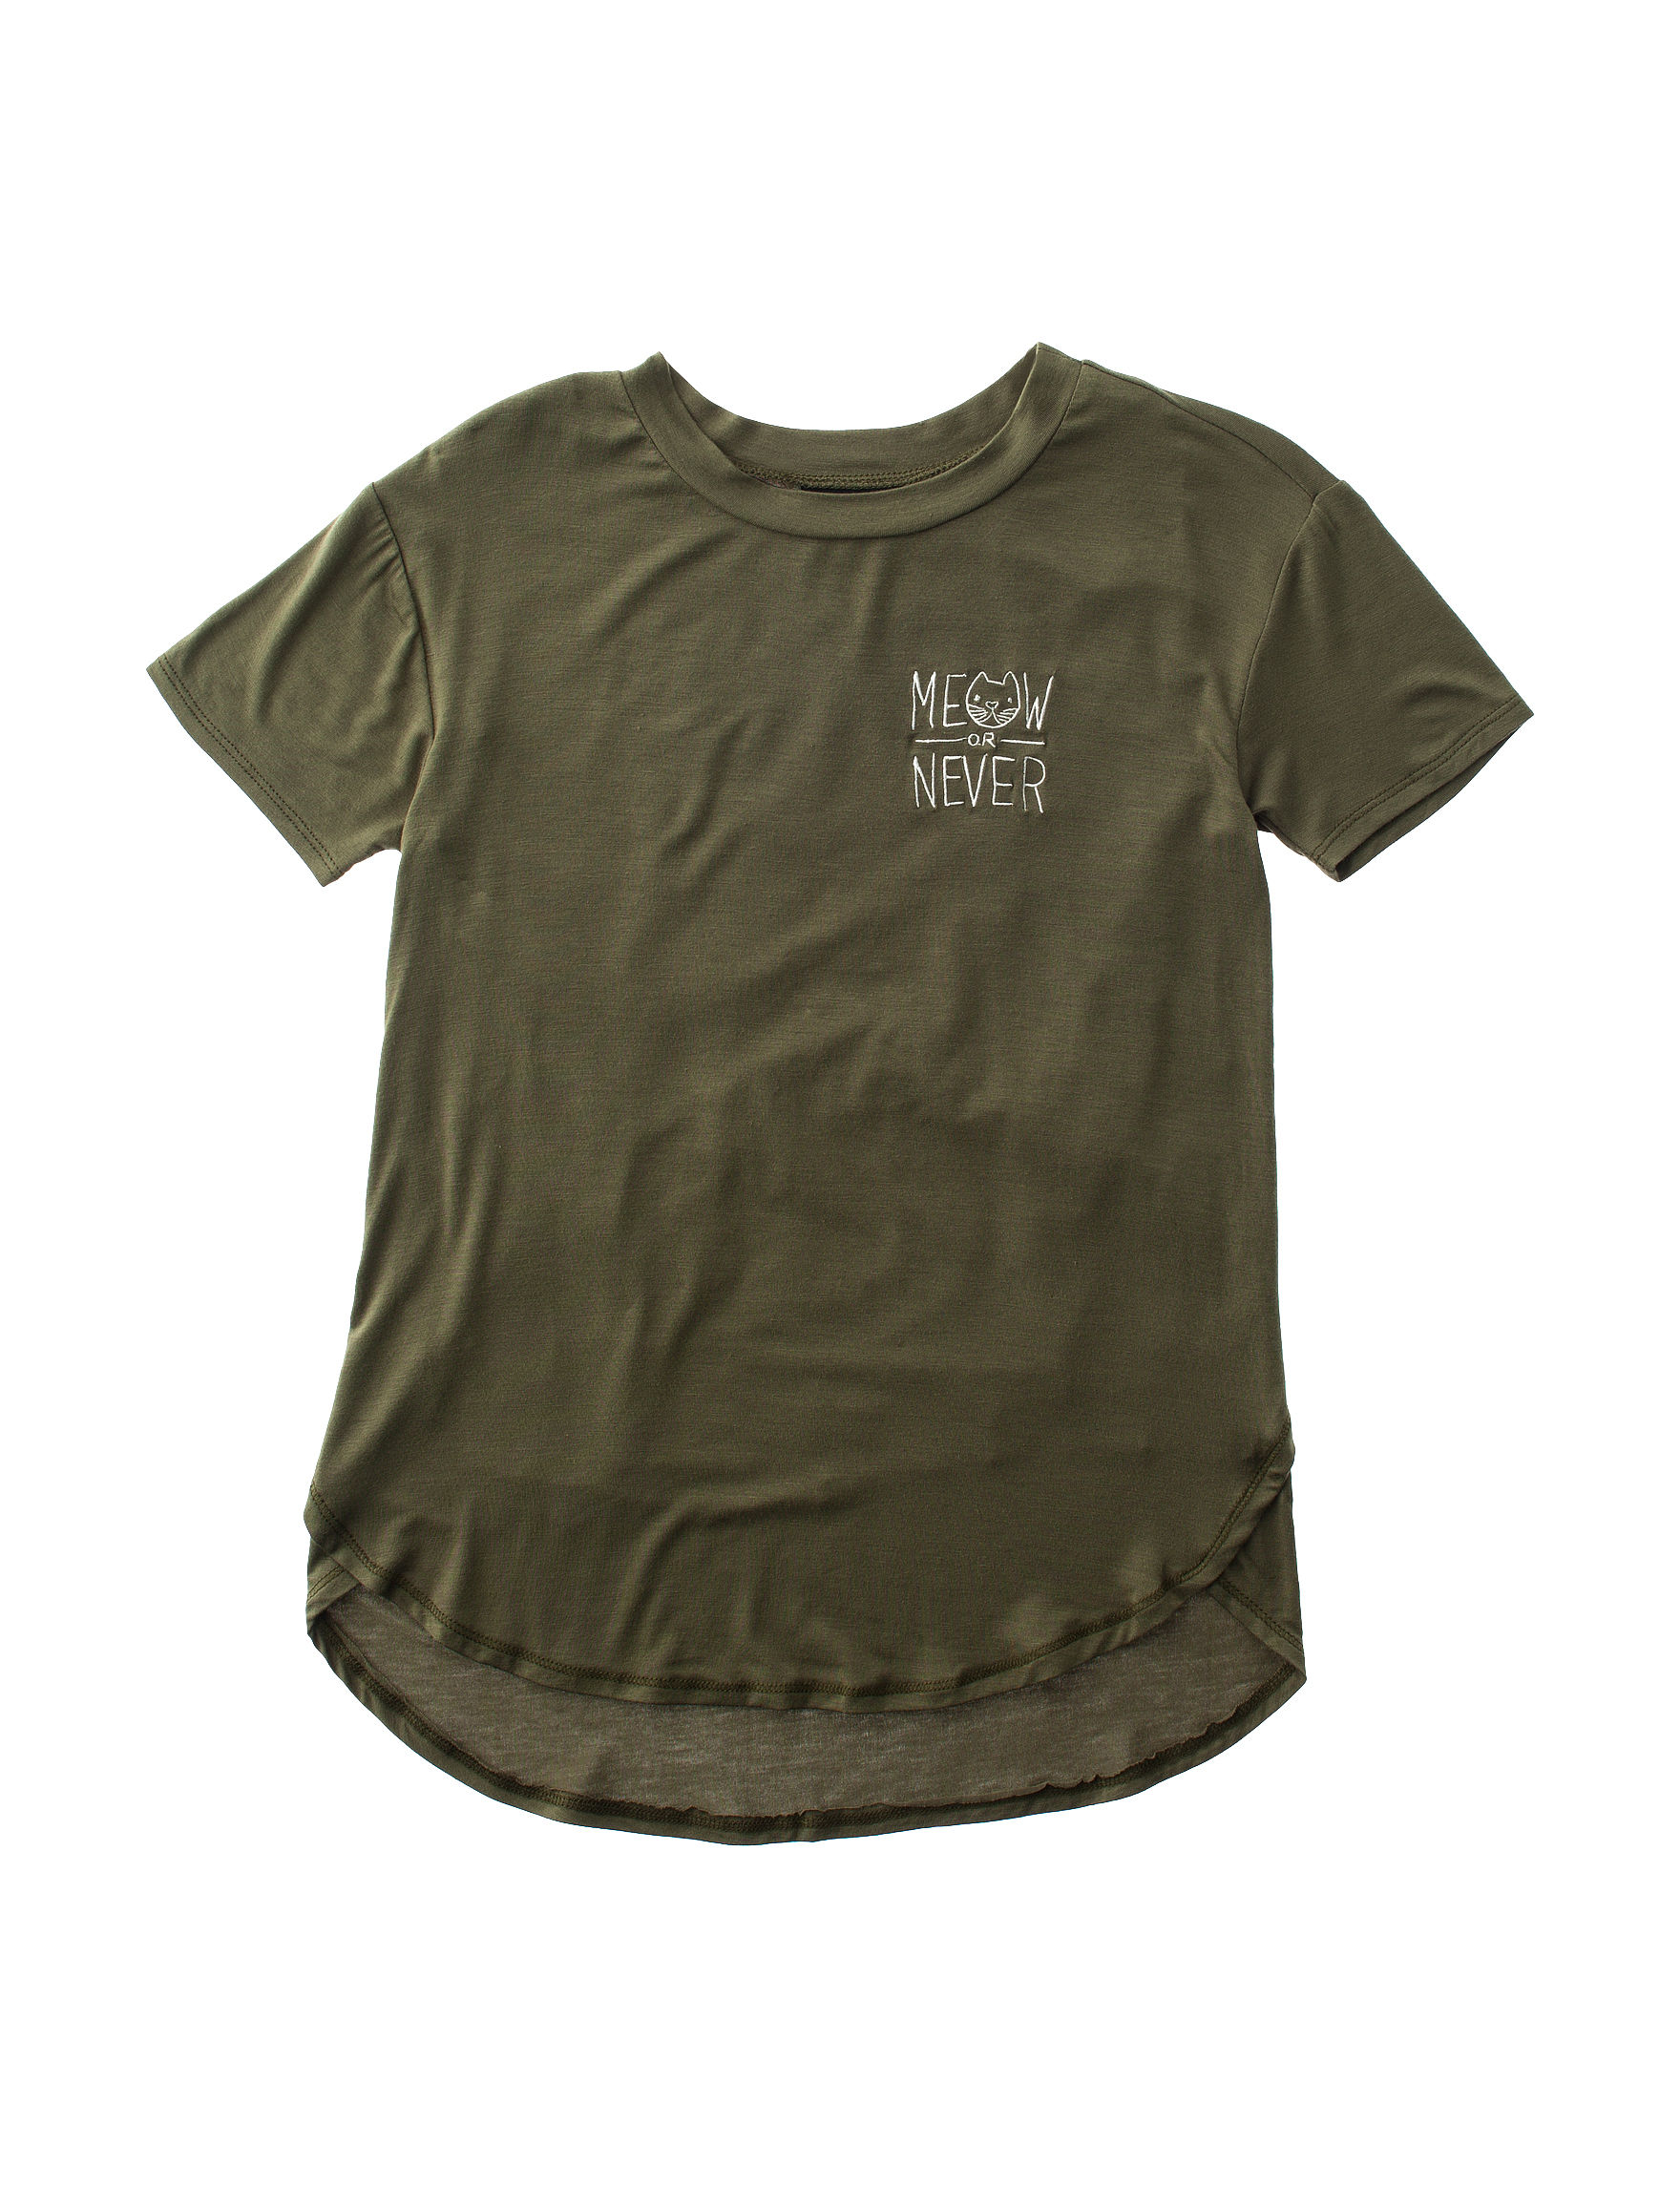 Miss Chevious Olive Tees & Tanks